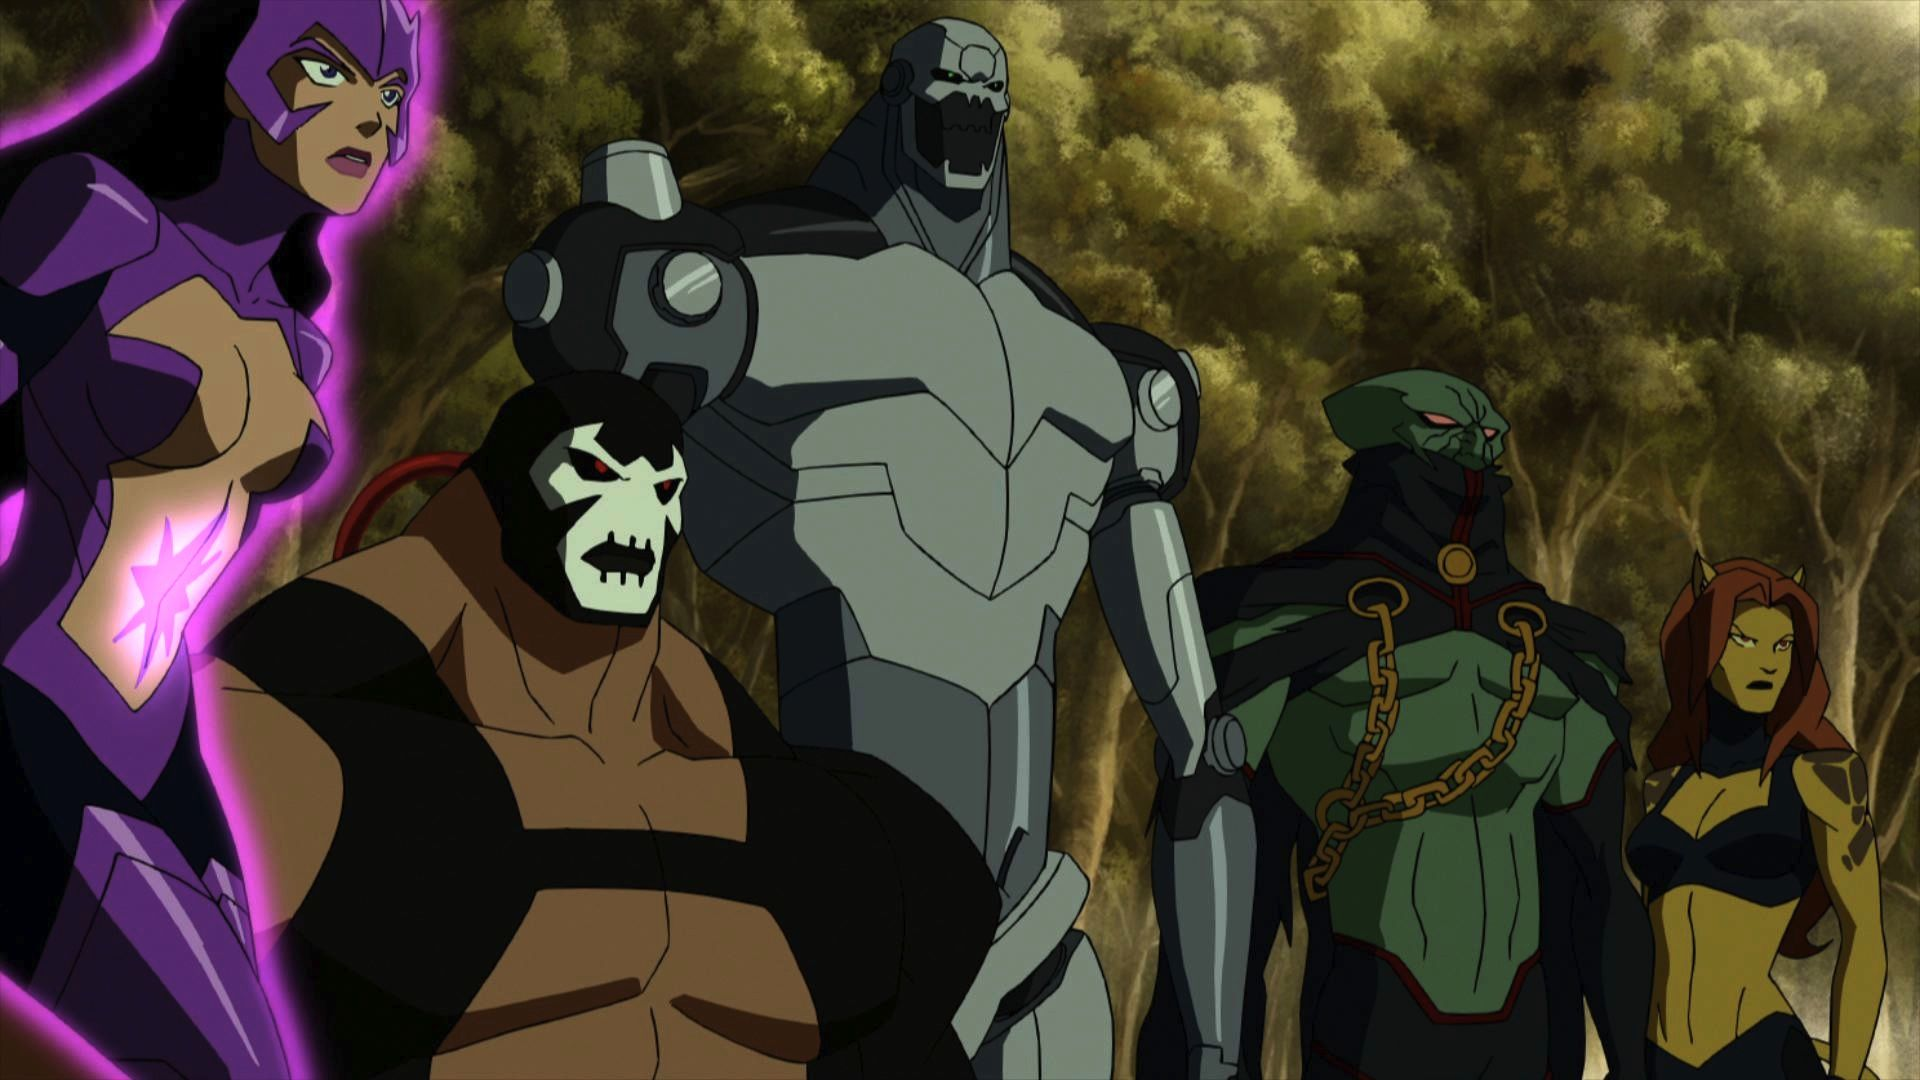 Pin By Cr On Animated Movies Justice League Doom Justice League Villain Justice League